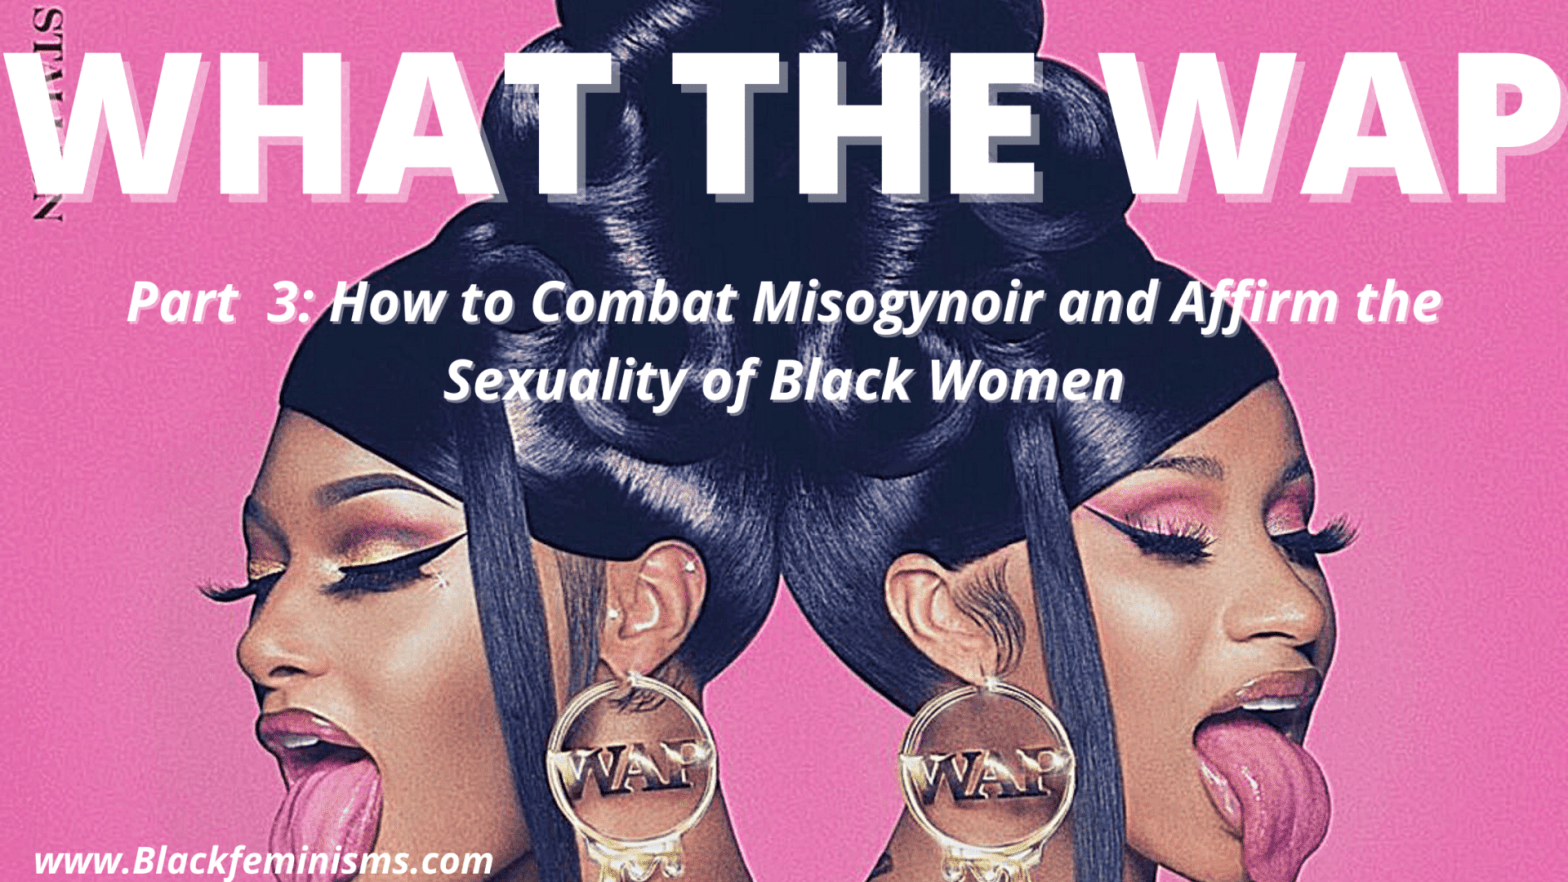 How to Combat Misogynoir and Affirm the Sexuality of Black Women